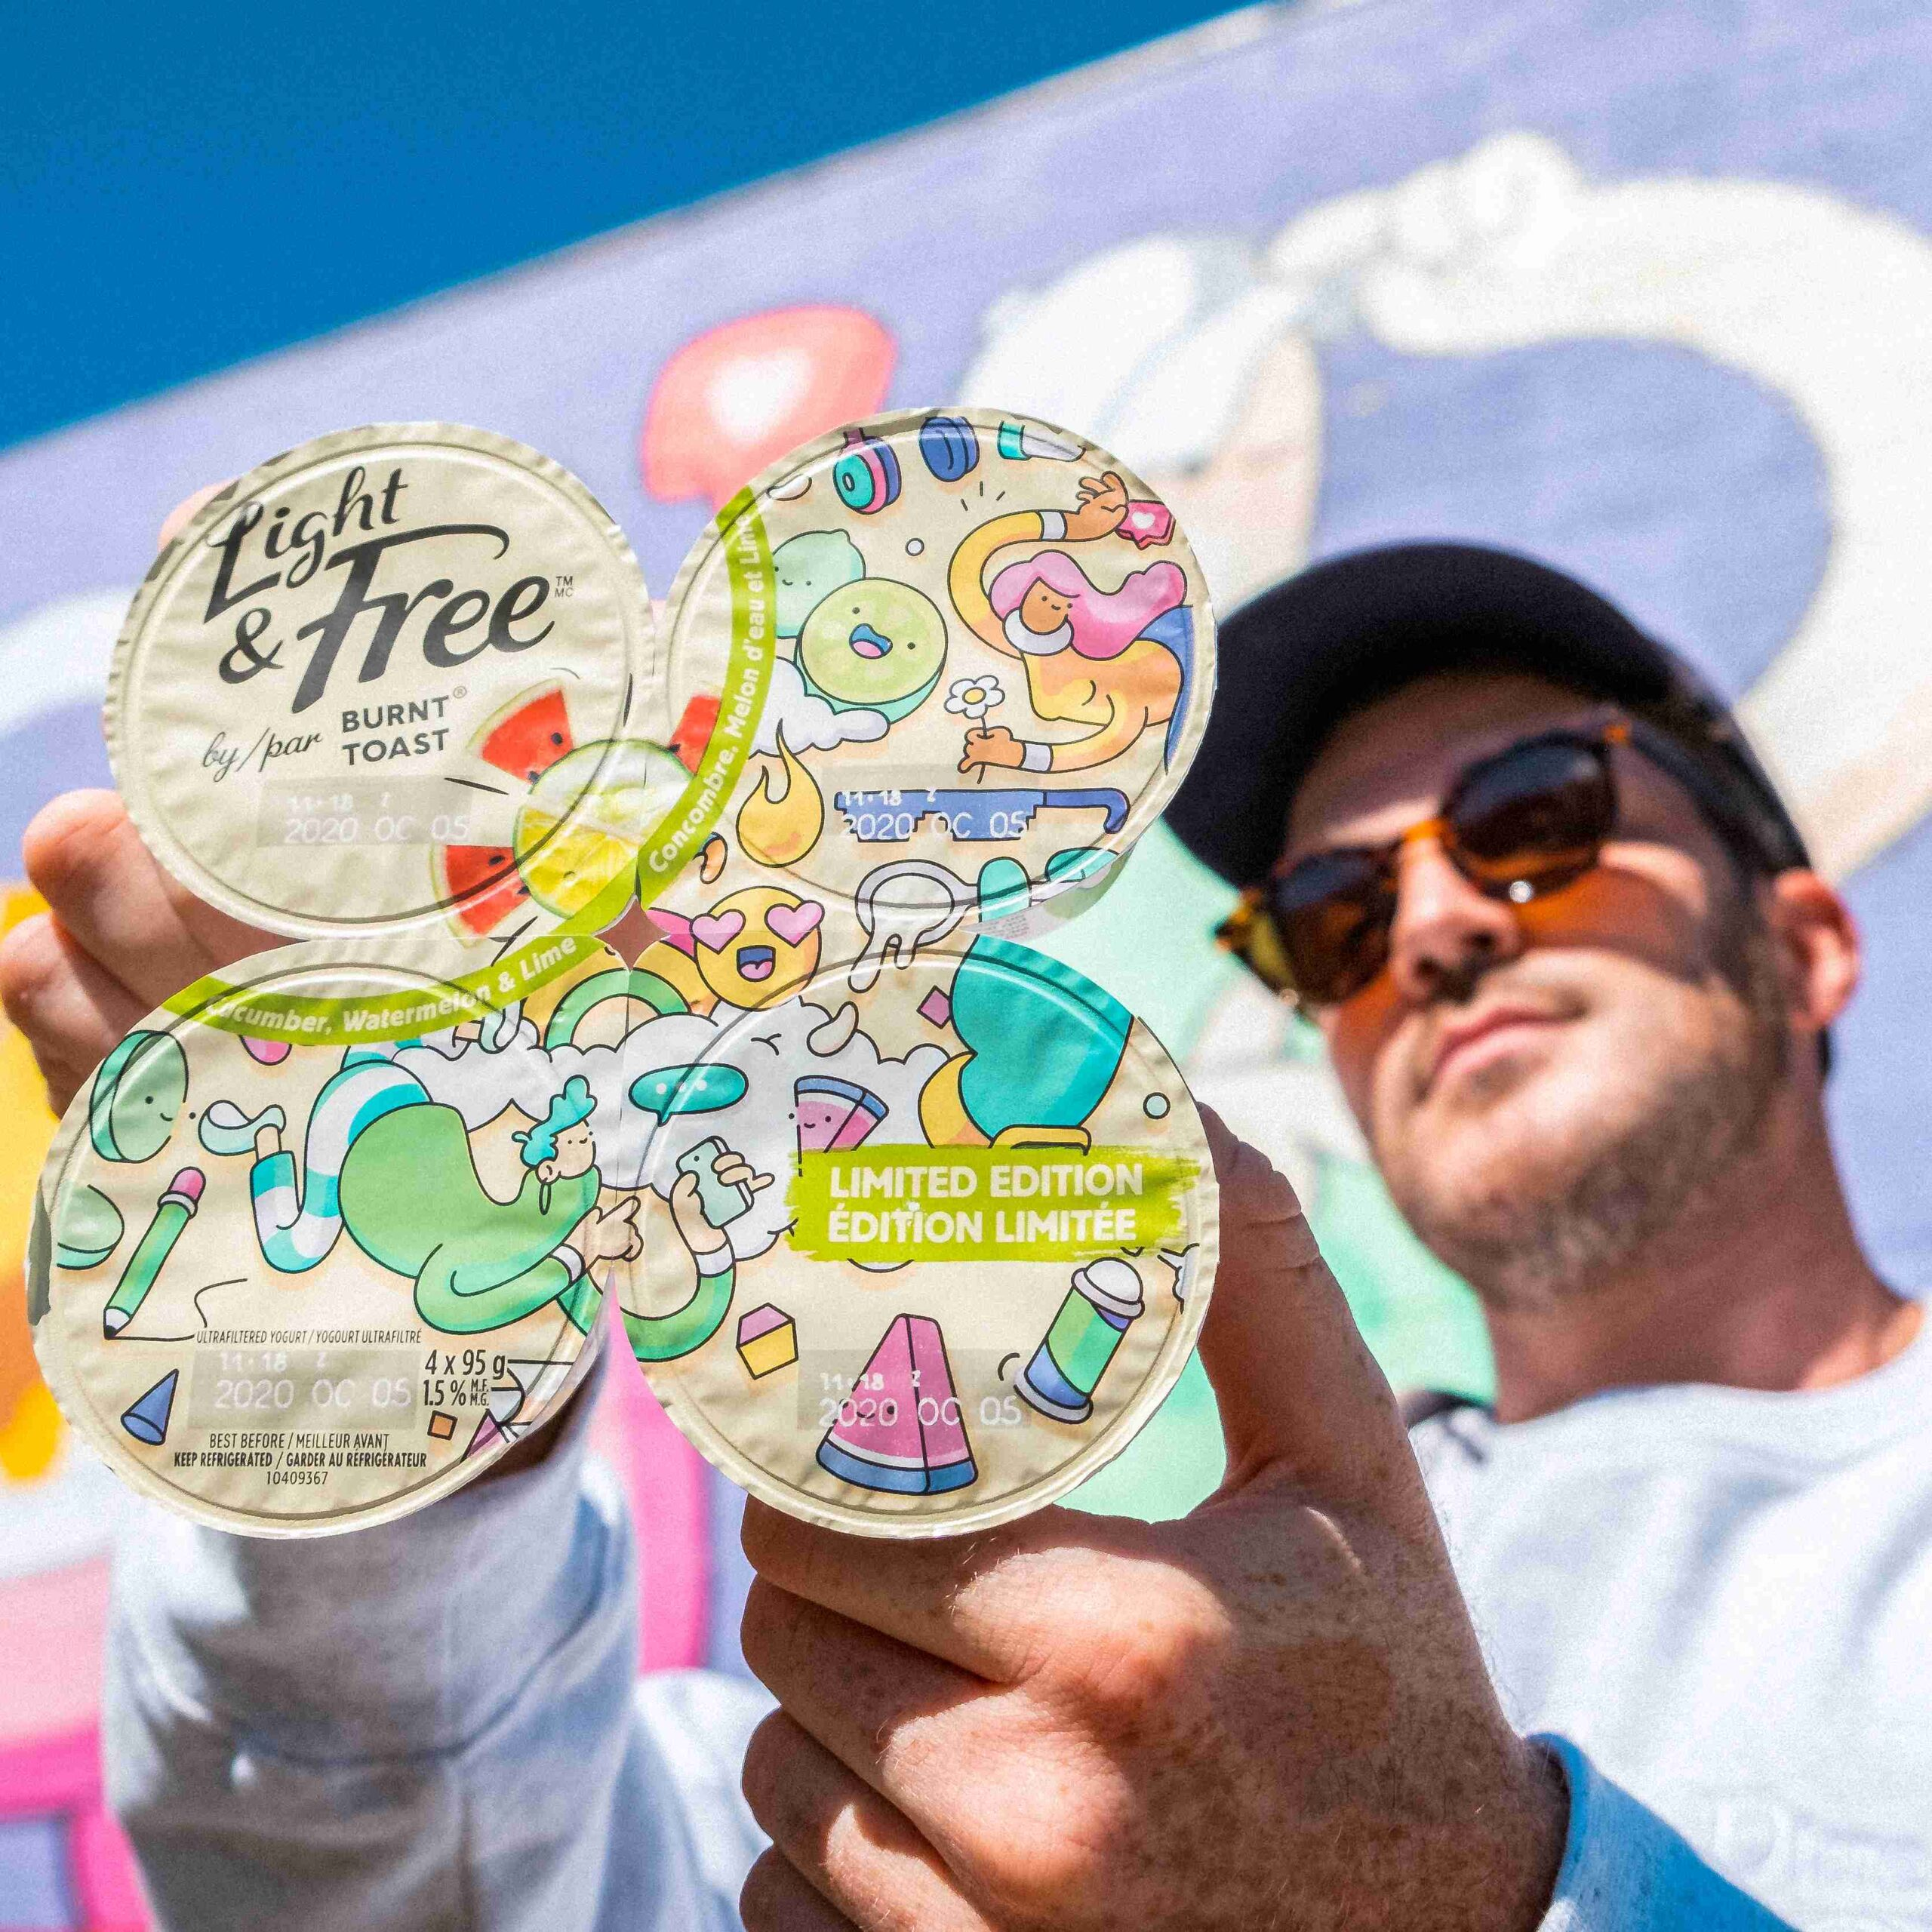 Danone partners with renowned Canadian street artist with a mural and limited-edition packaging